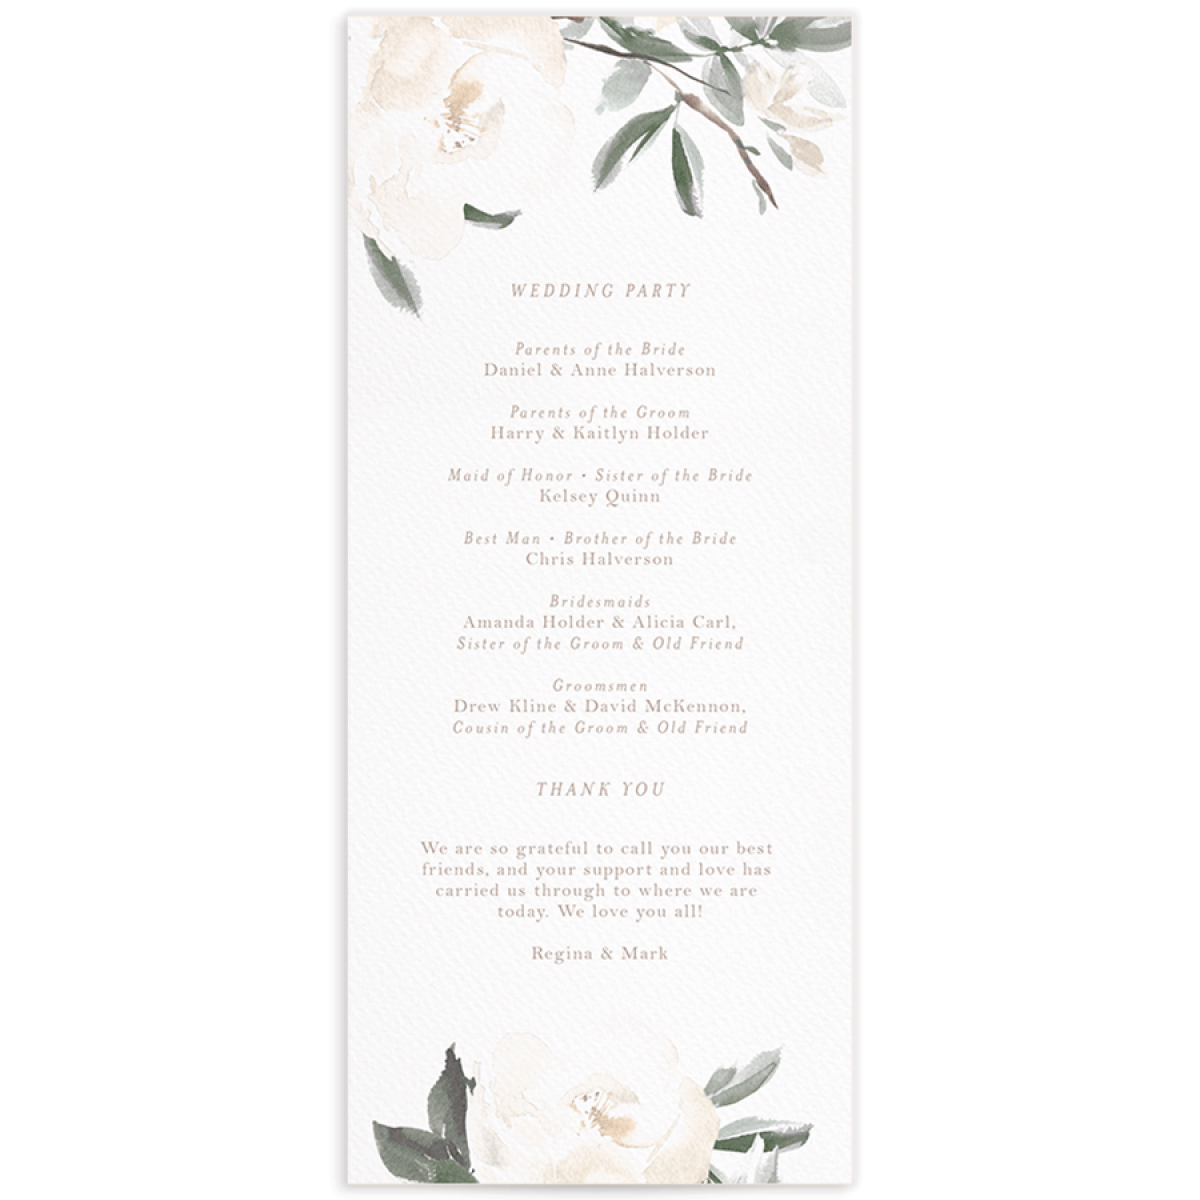 Elegant Garden wedding programs in green backer